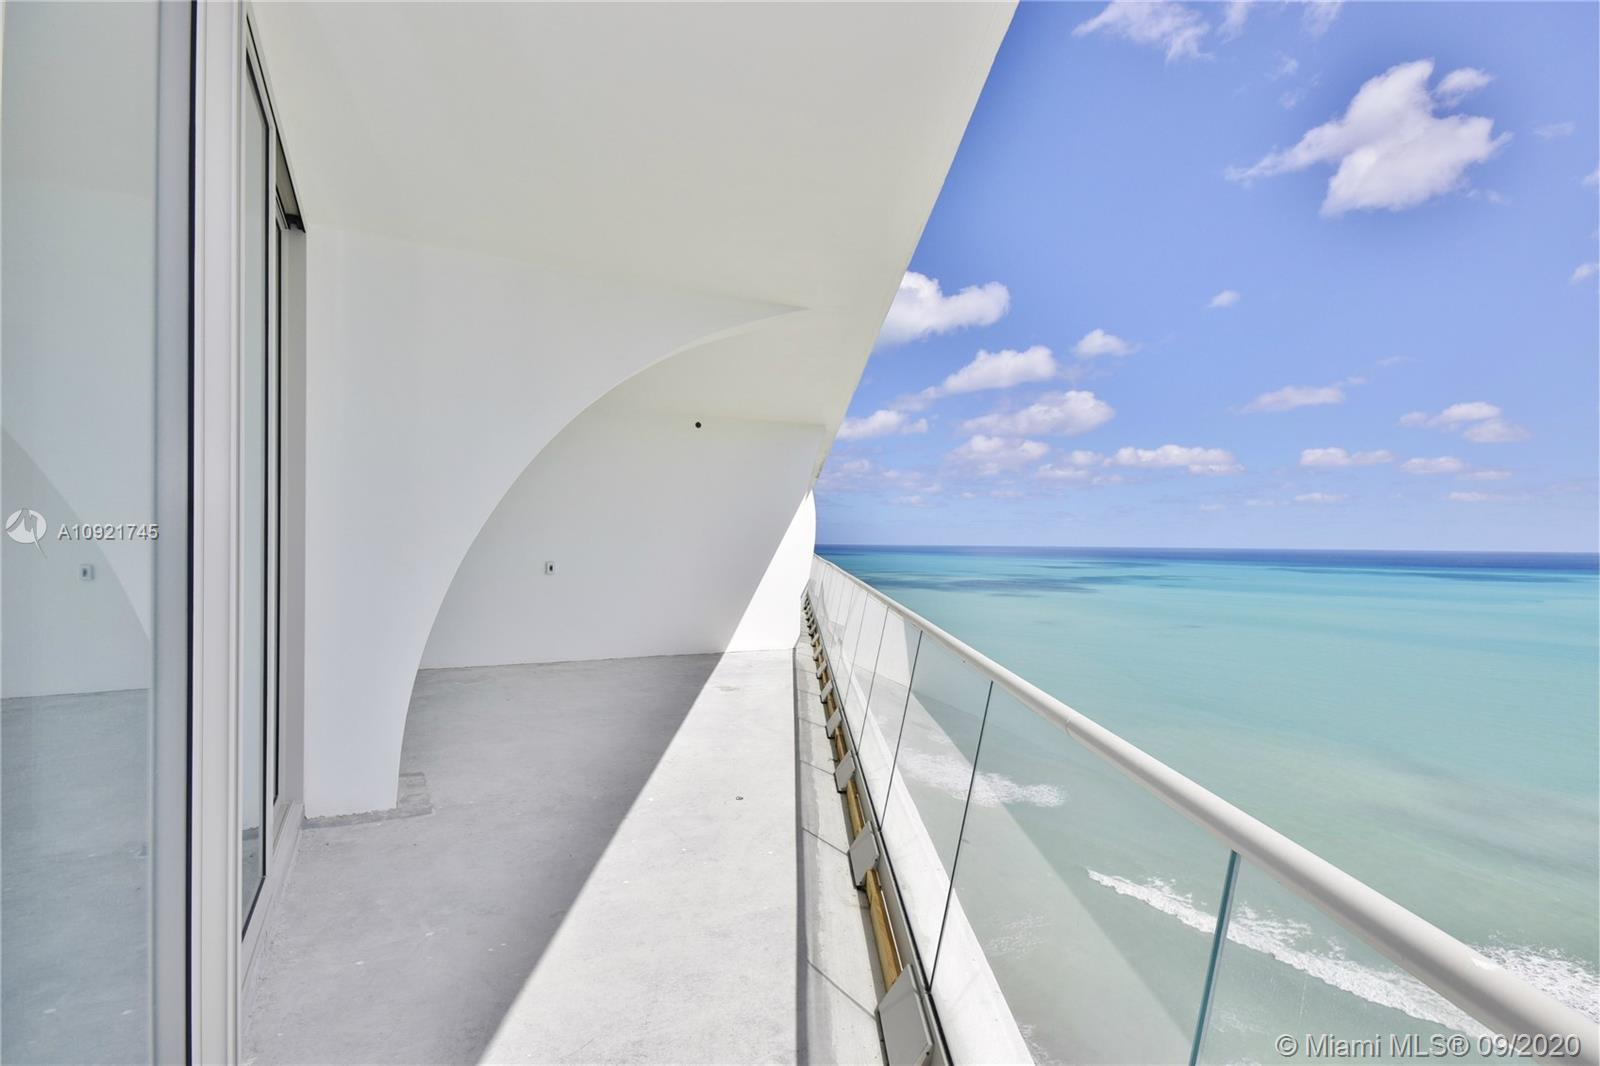 16901 Collins Ave, Unit #3101 Luxury Real Estate